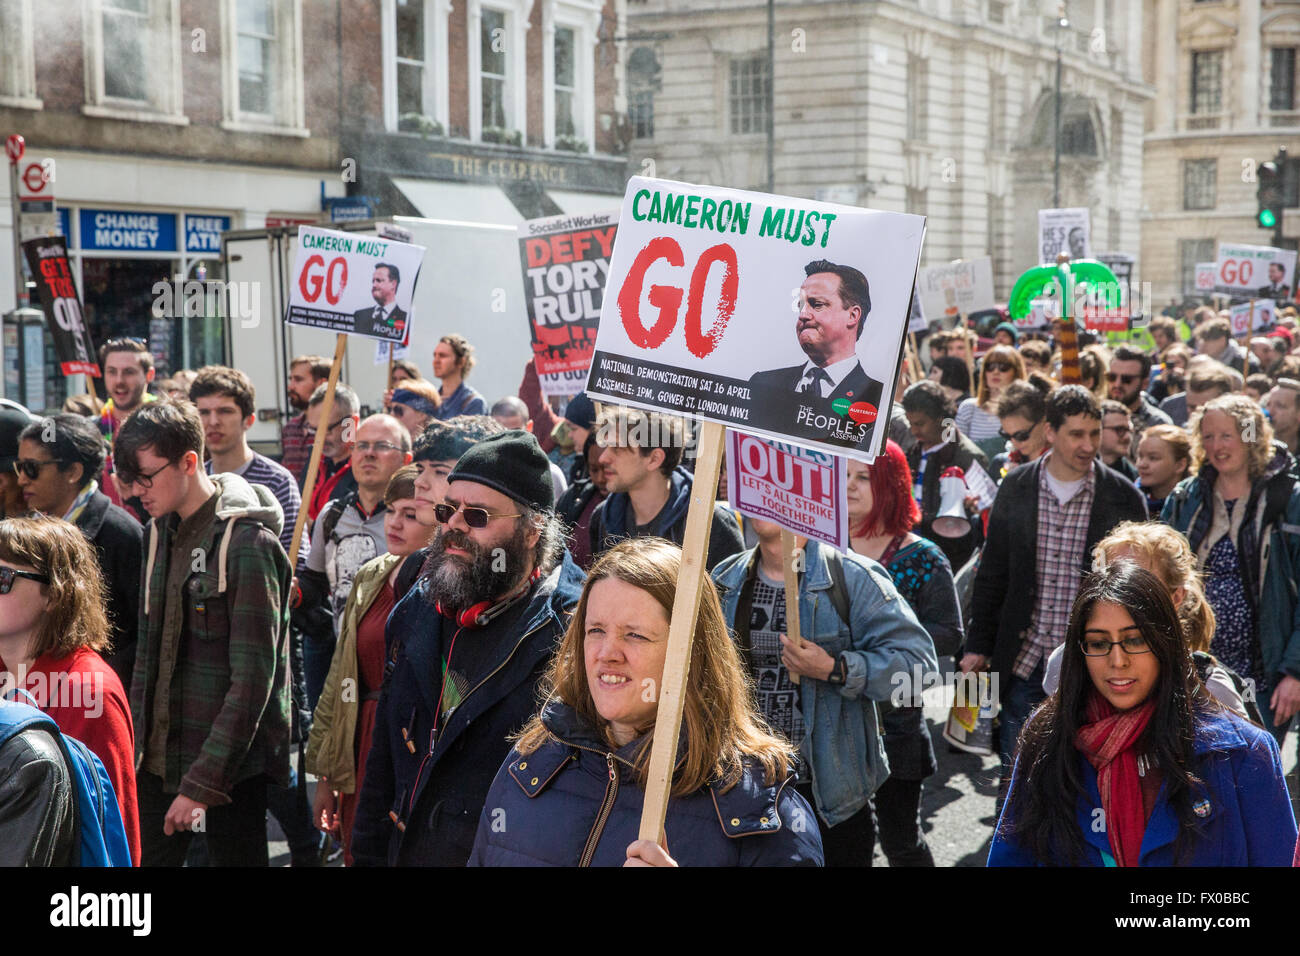 London, UK. 9th April, 2016. Hundreds of protesters march along Whitehall to call on David Cameron to 'close tax - Stock Image